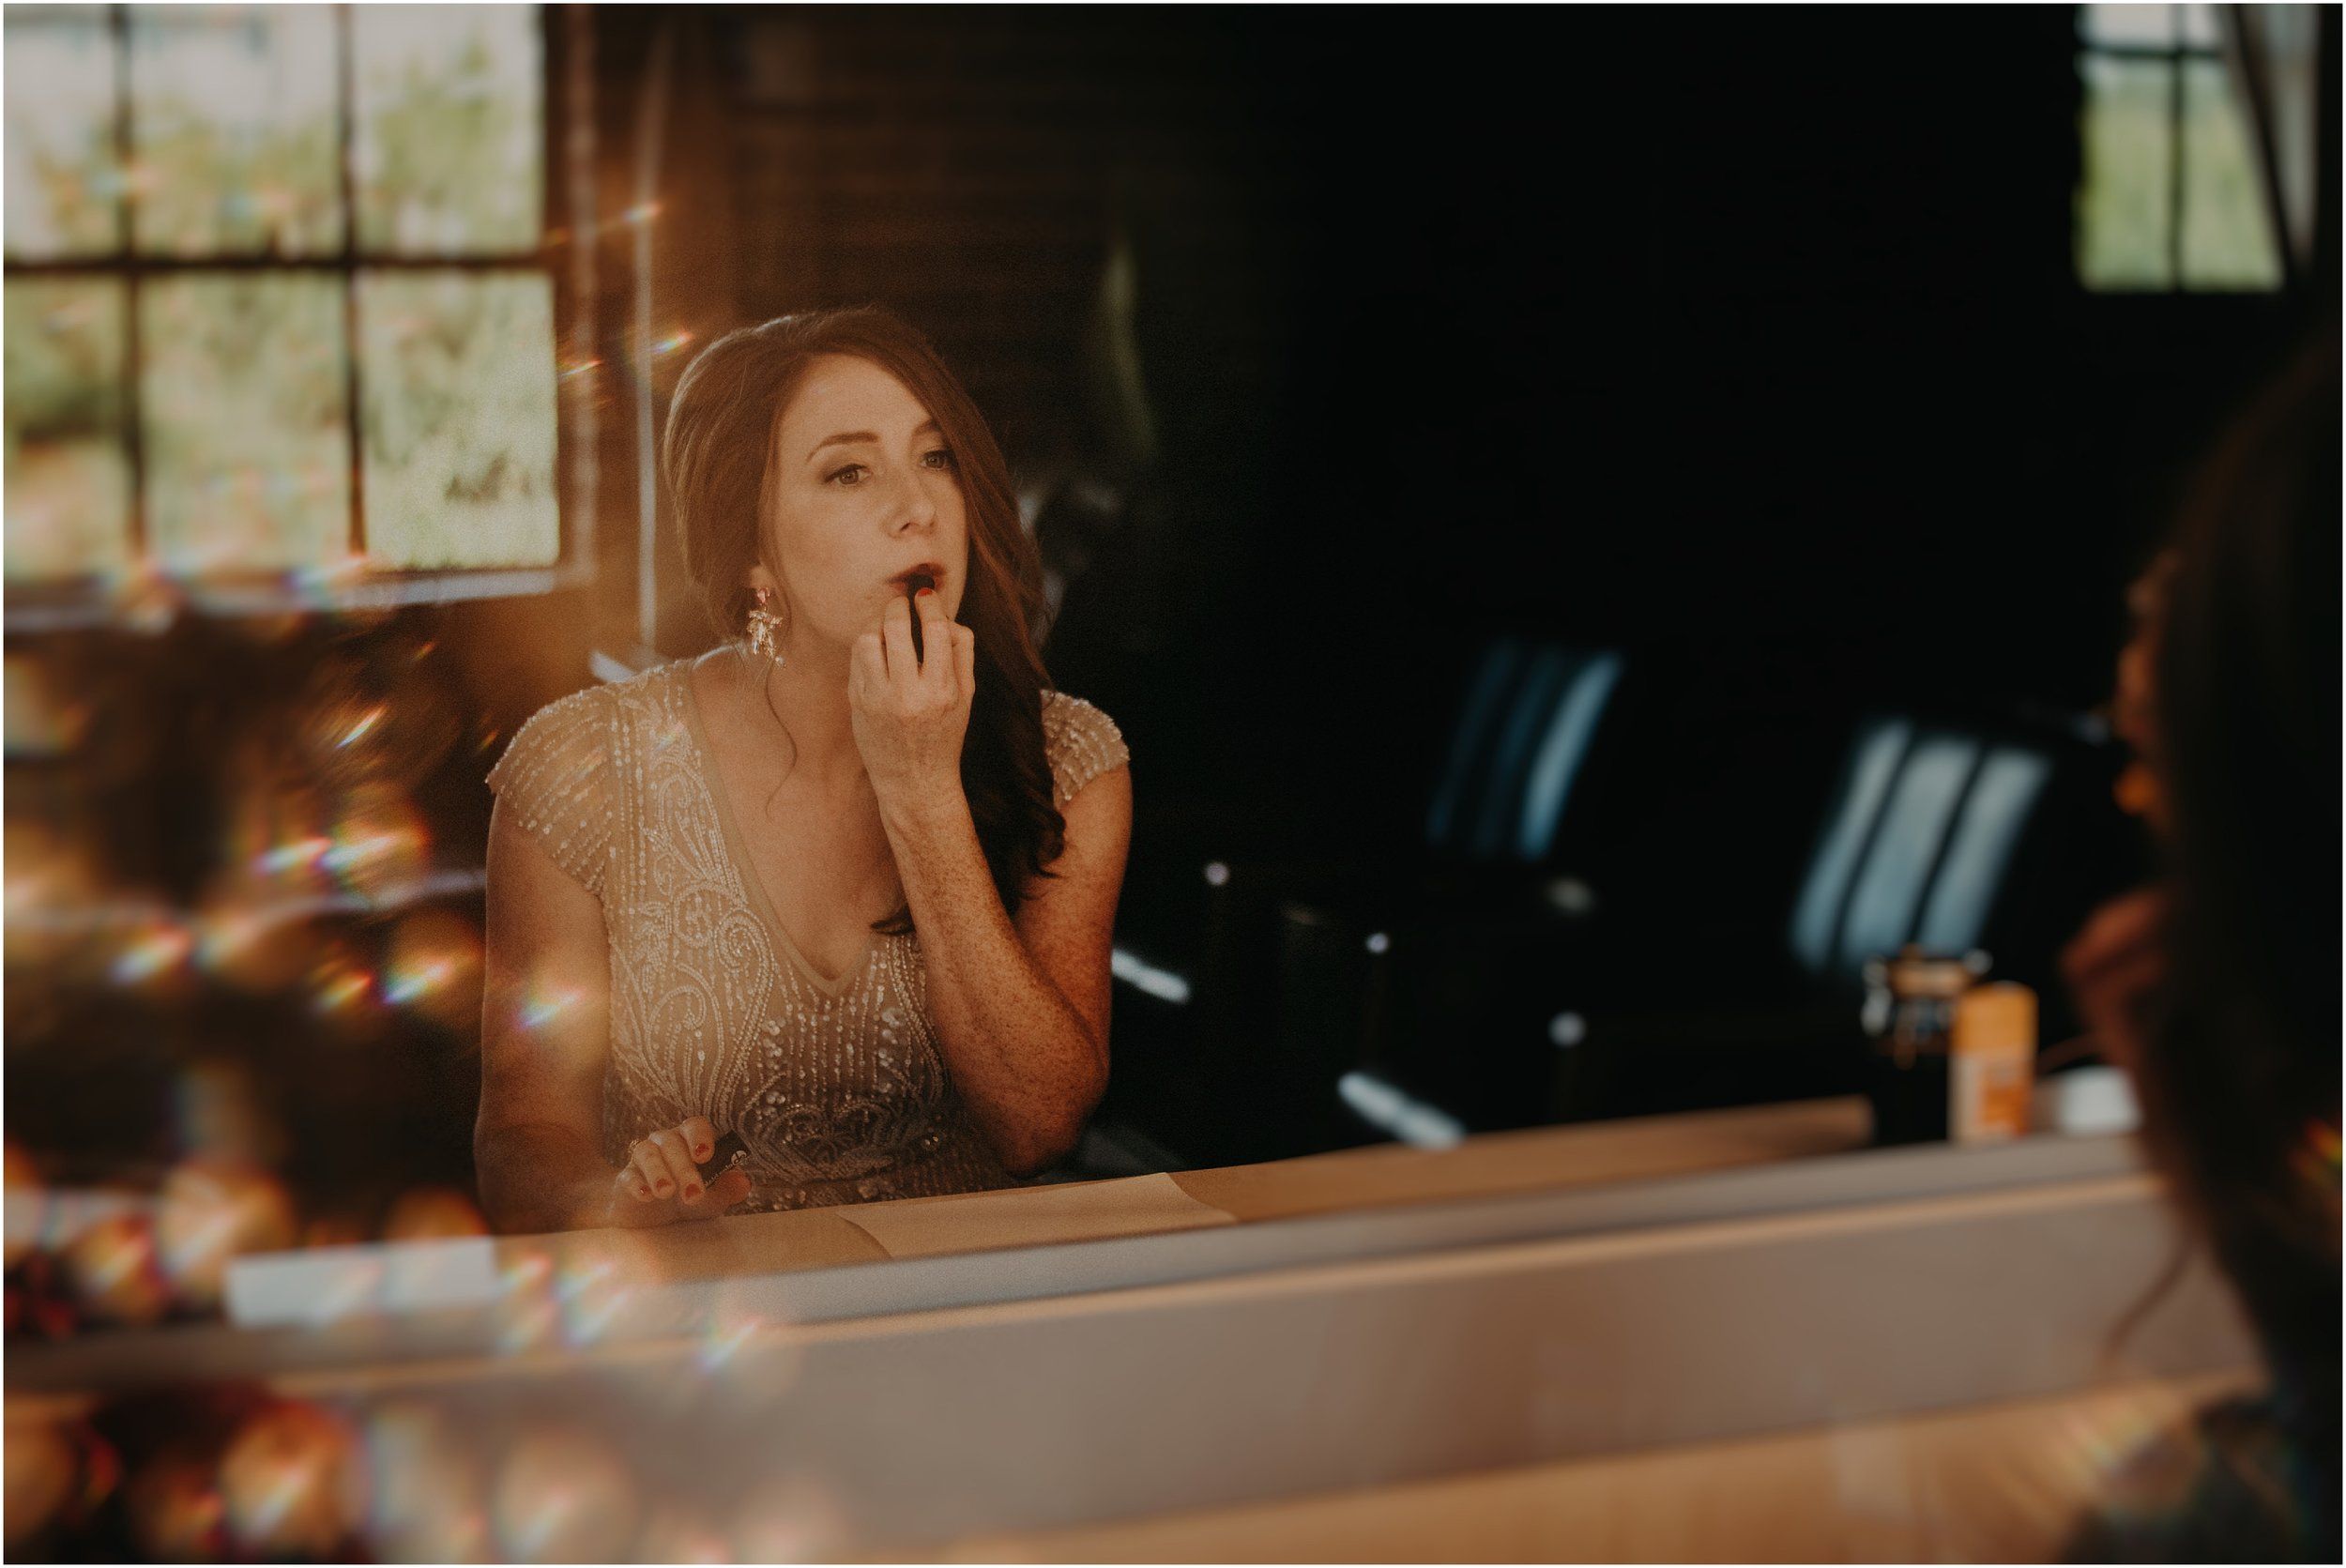 The bride applies her Elea Blake lipstick in this glamor shot